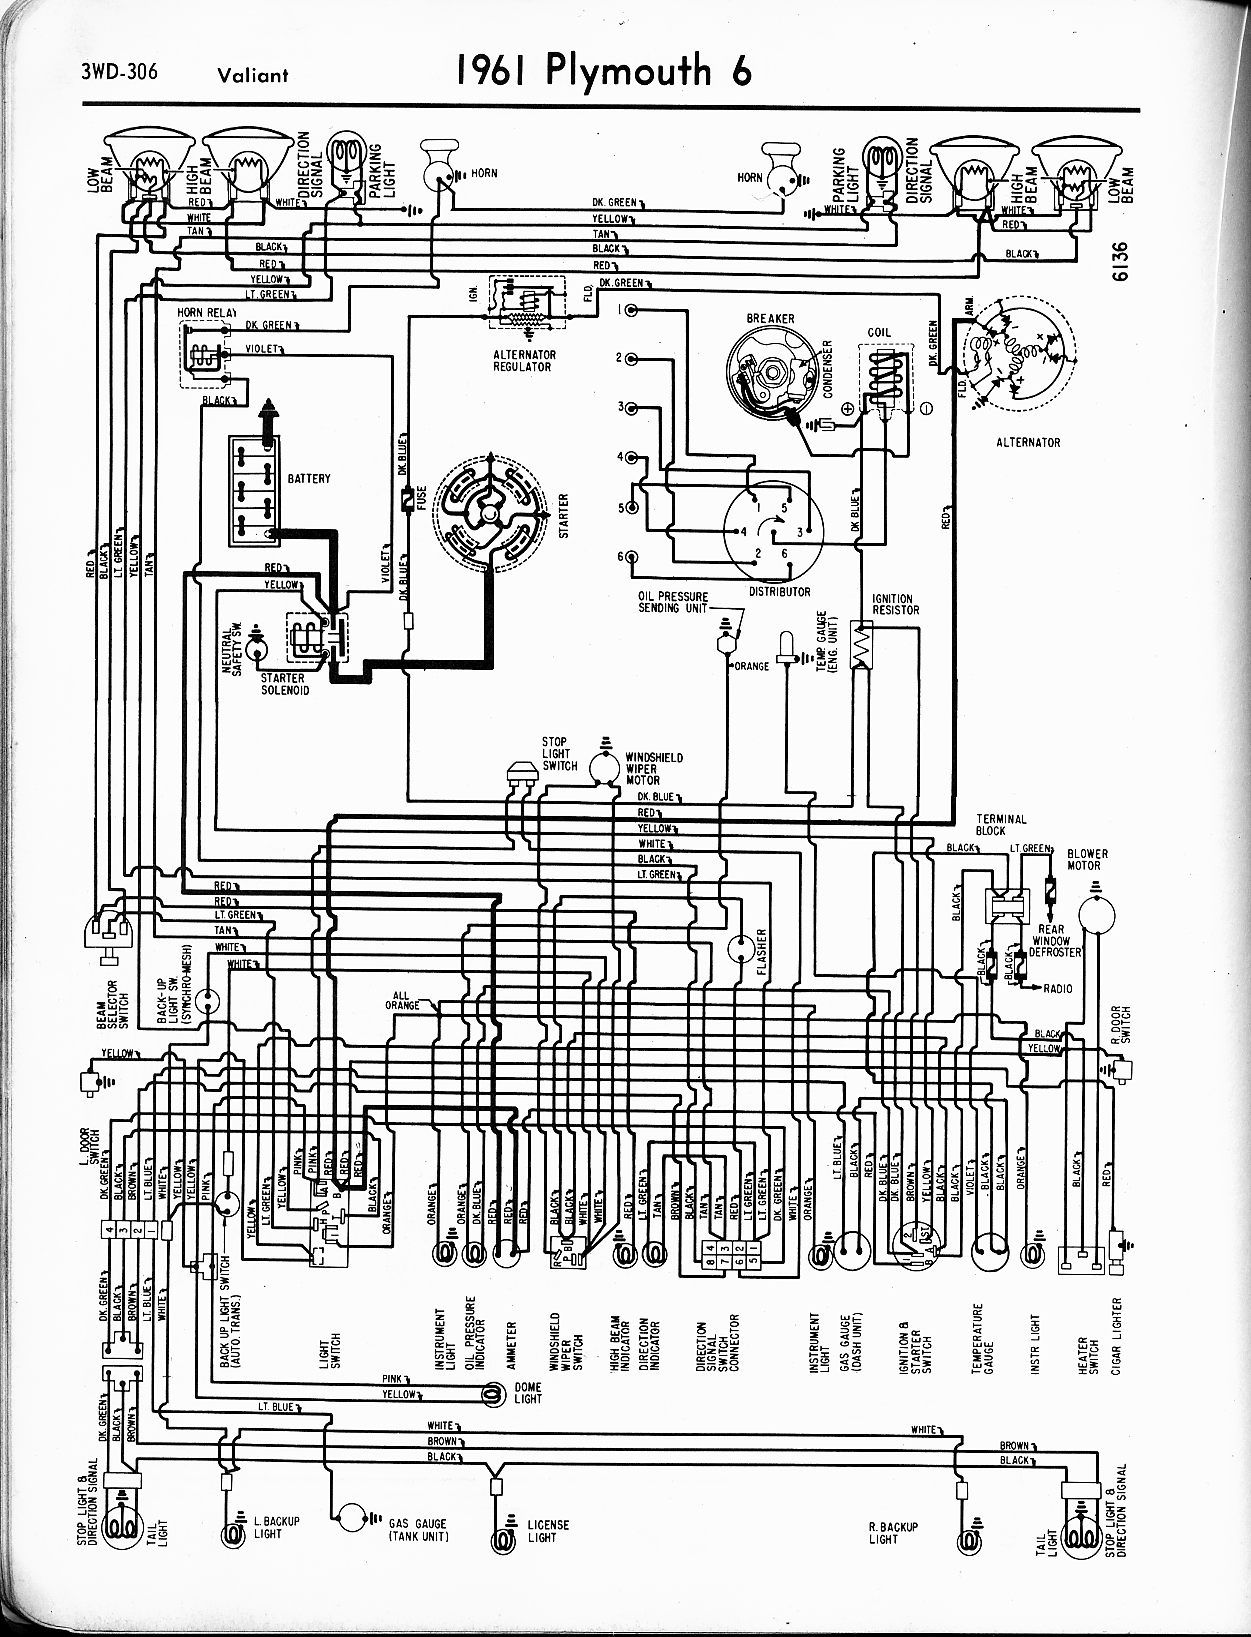 1969 Plymouth Turn Signal Wiring Diagram - Wiring Data